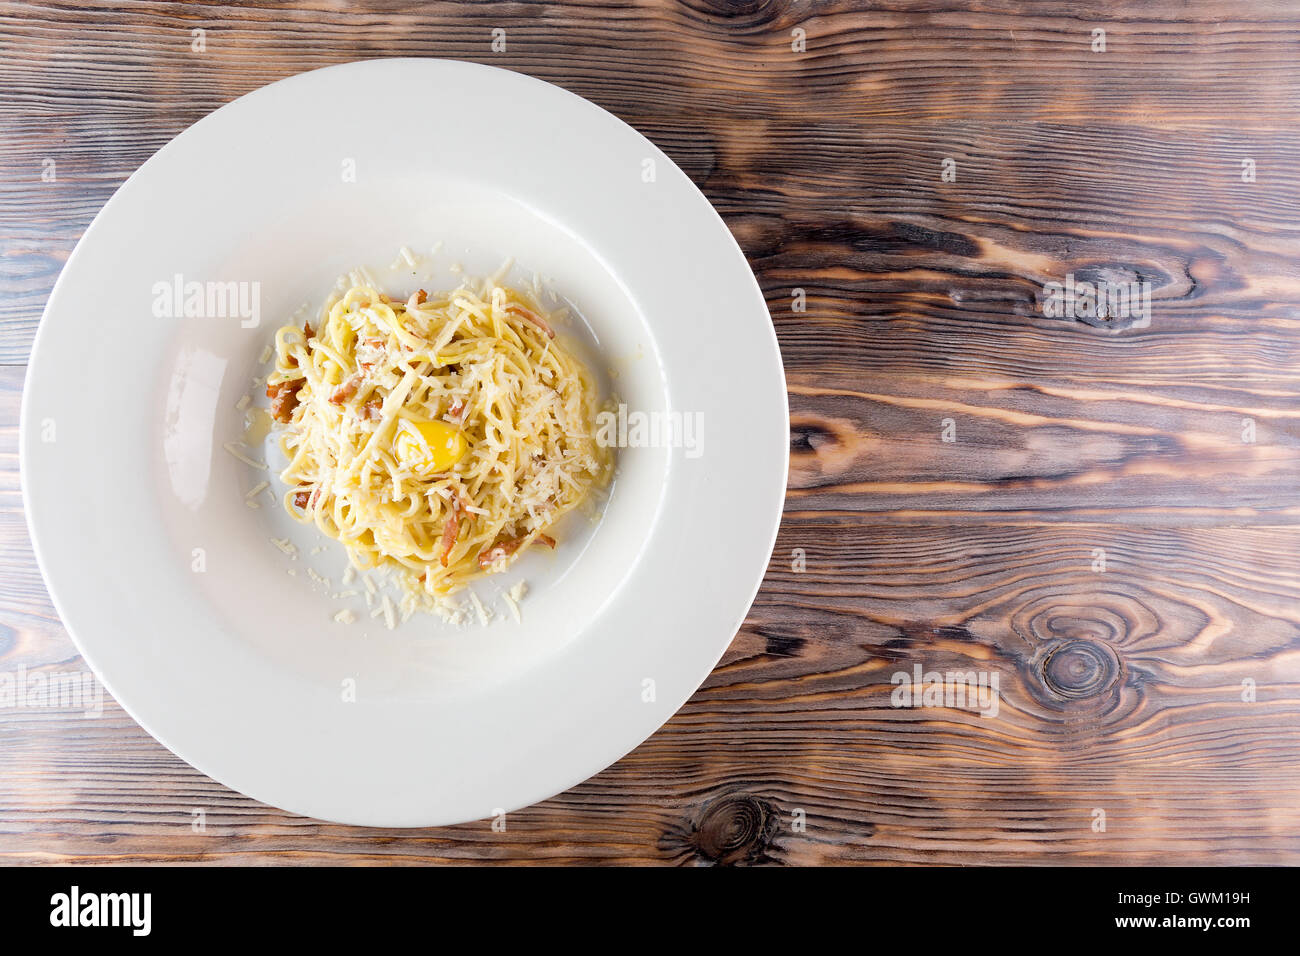 pasta with egg on wooden background. - Stock Image